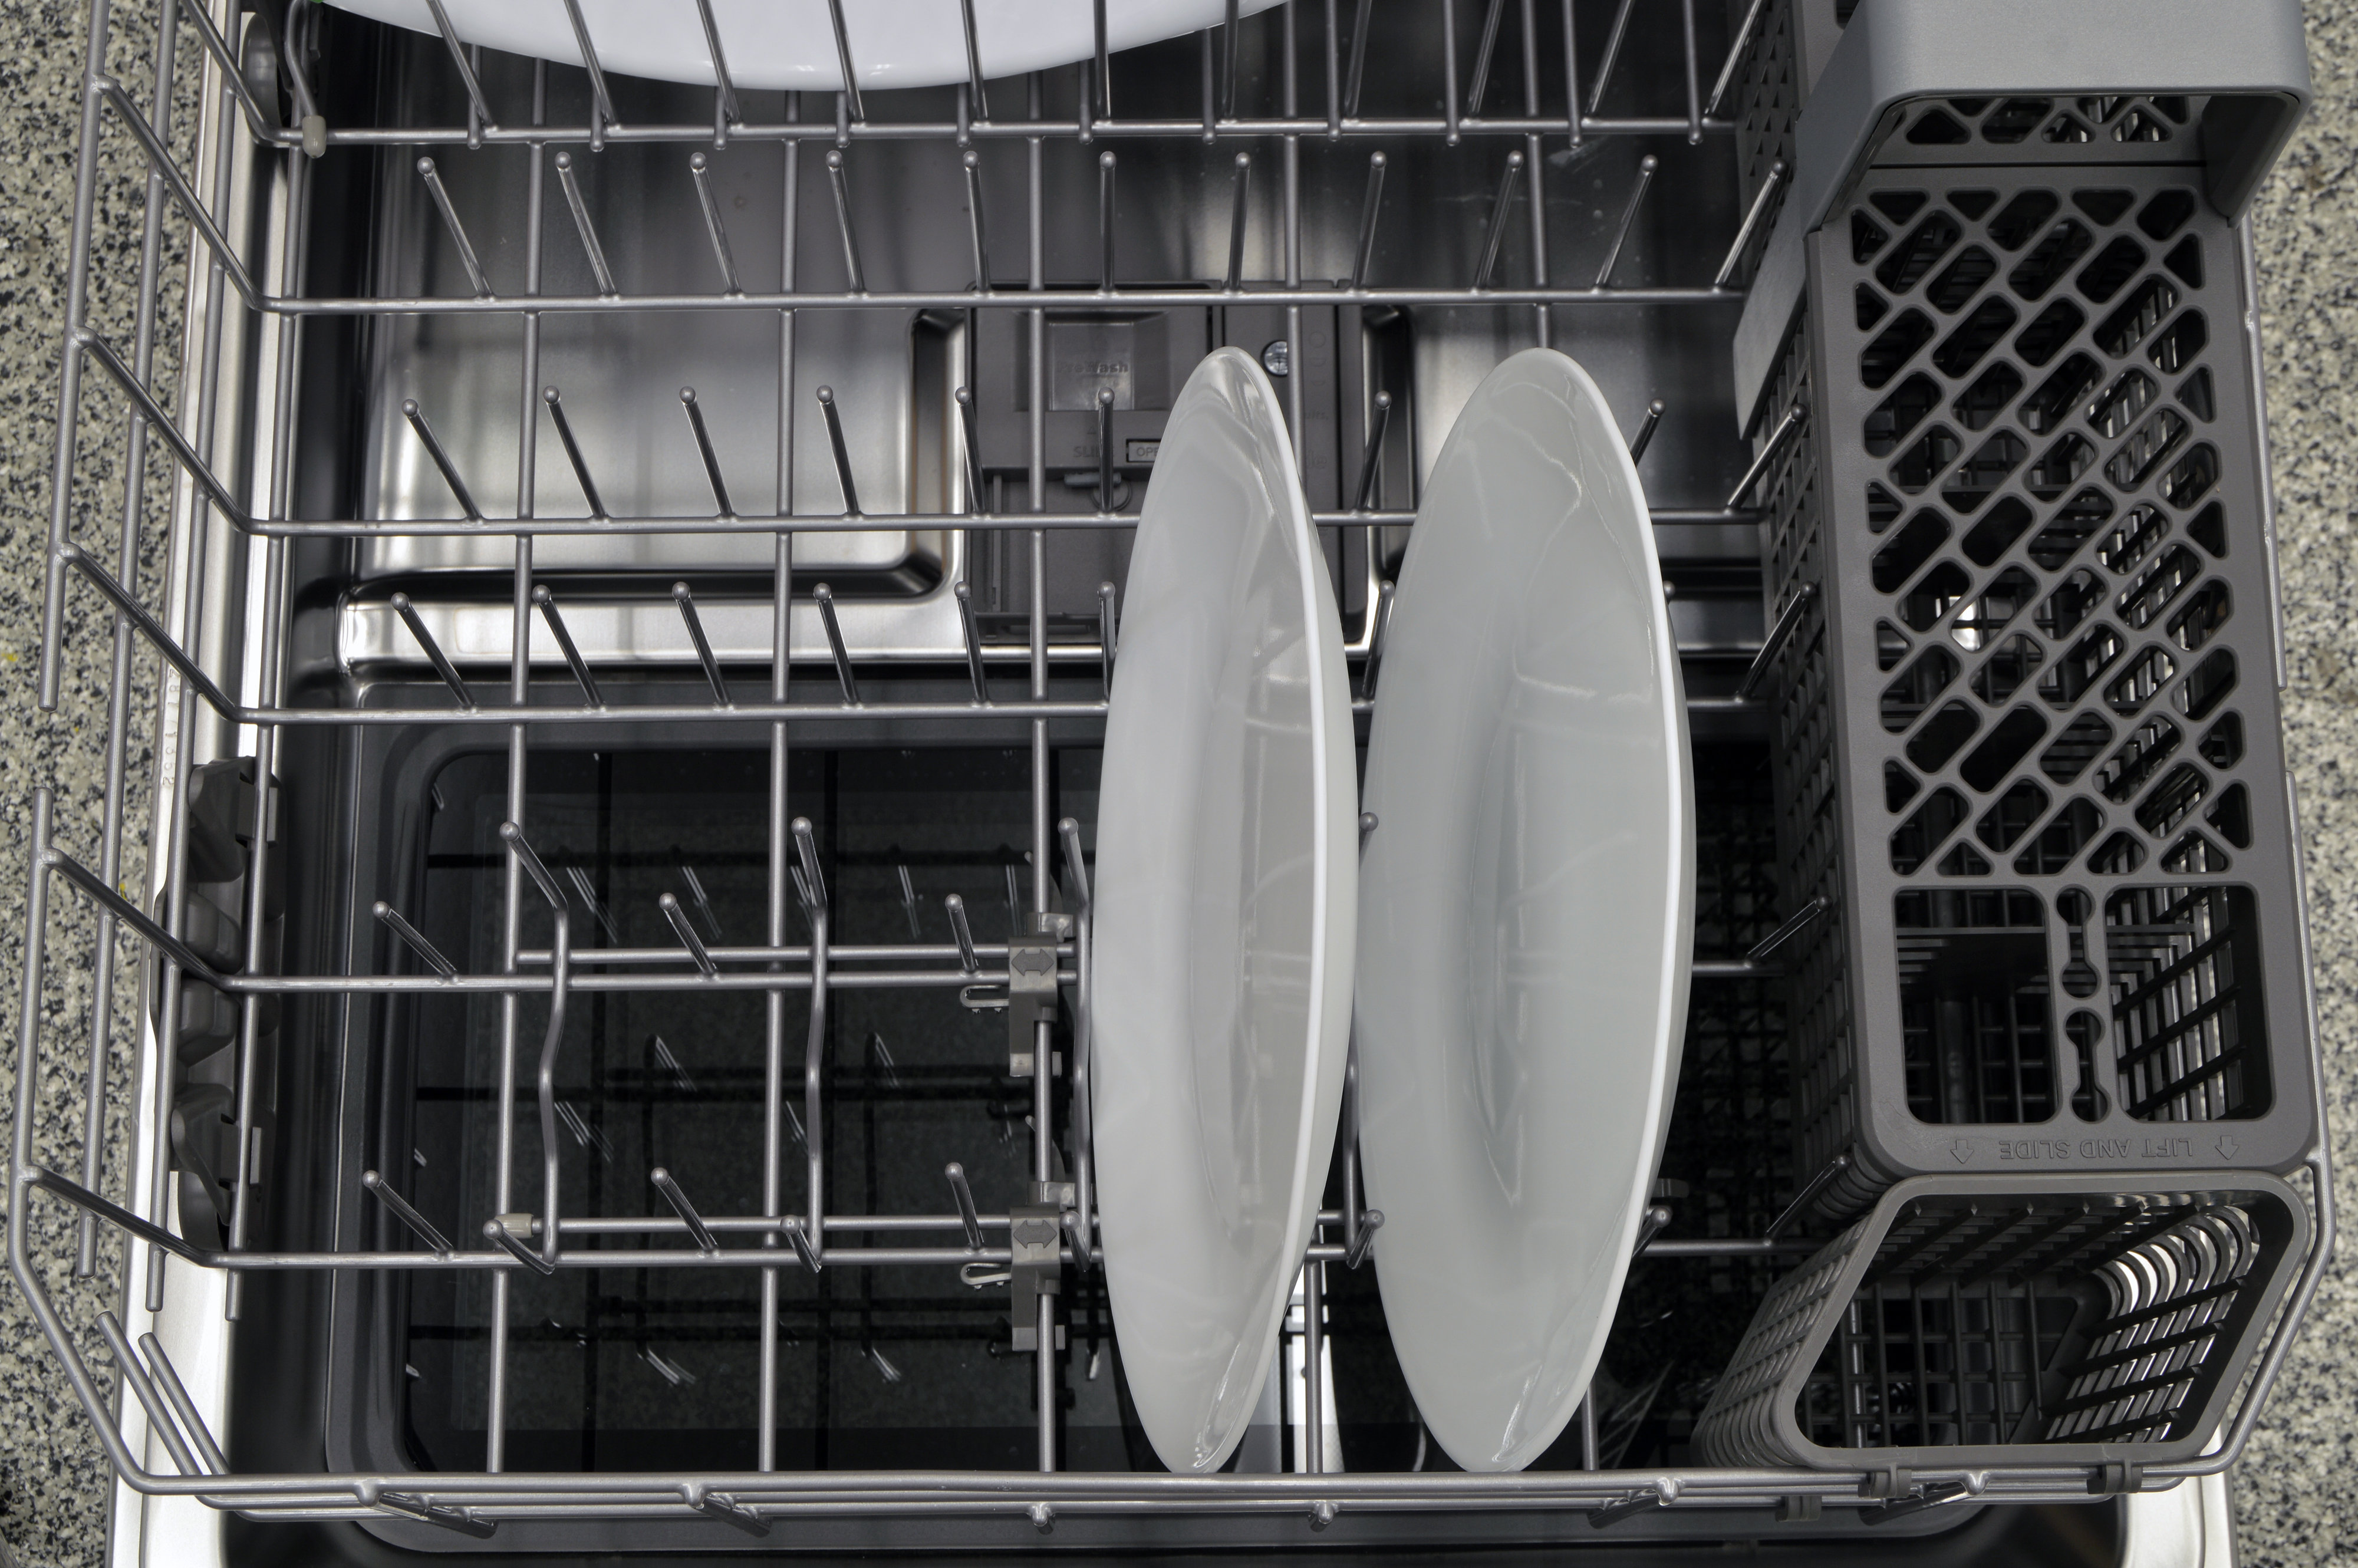 Thin plates placed on the lower rack